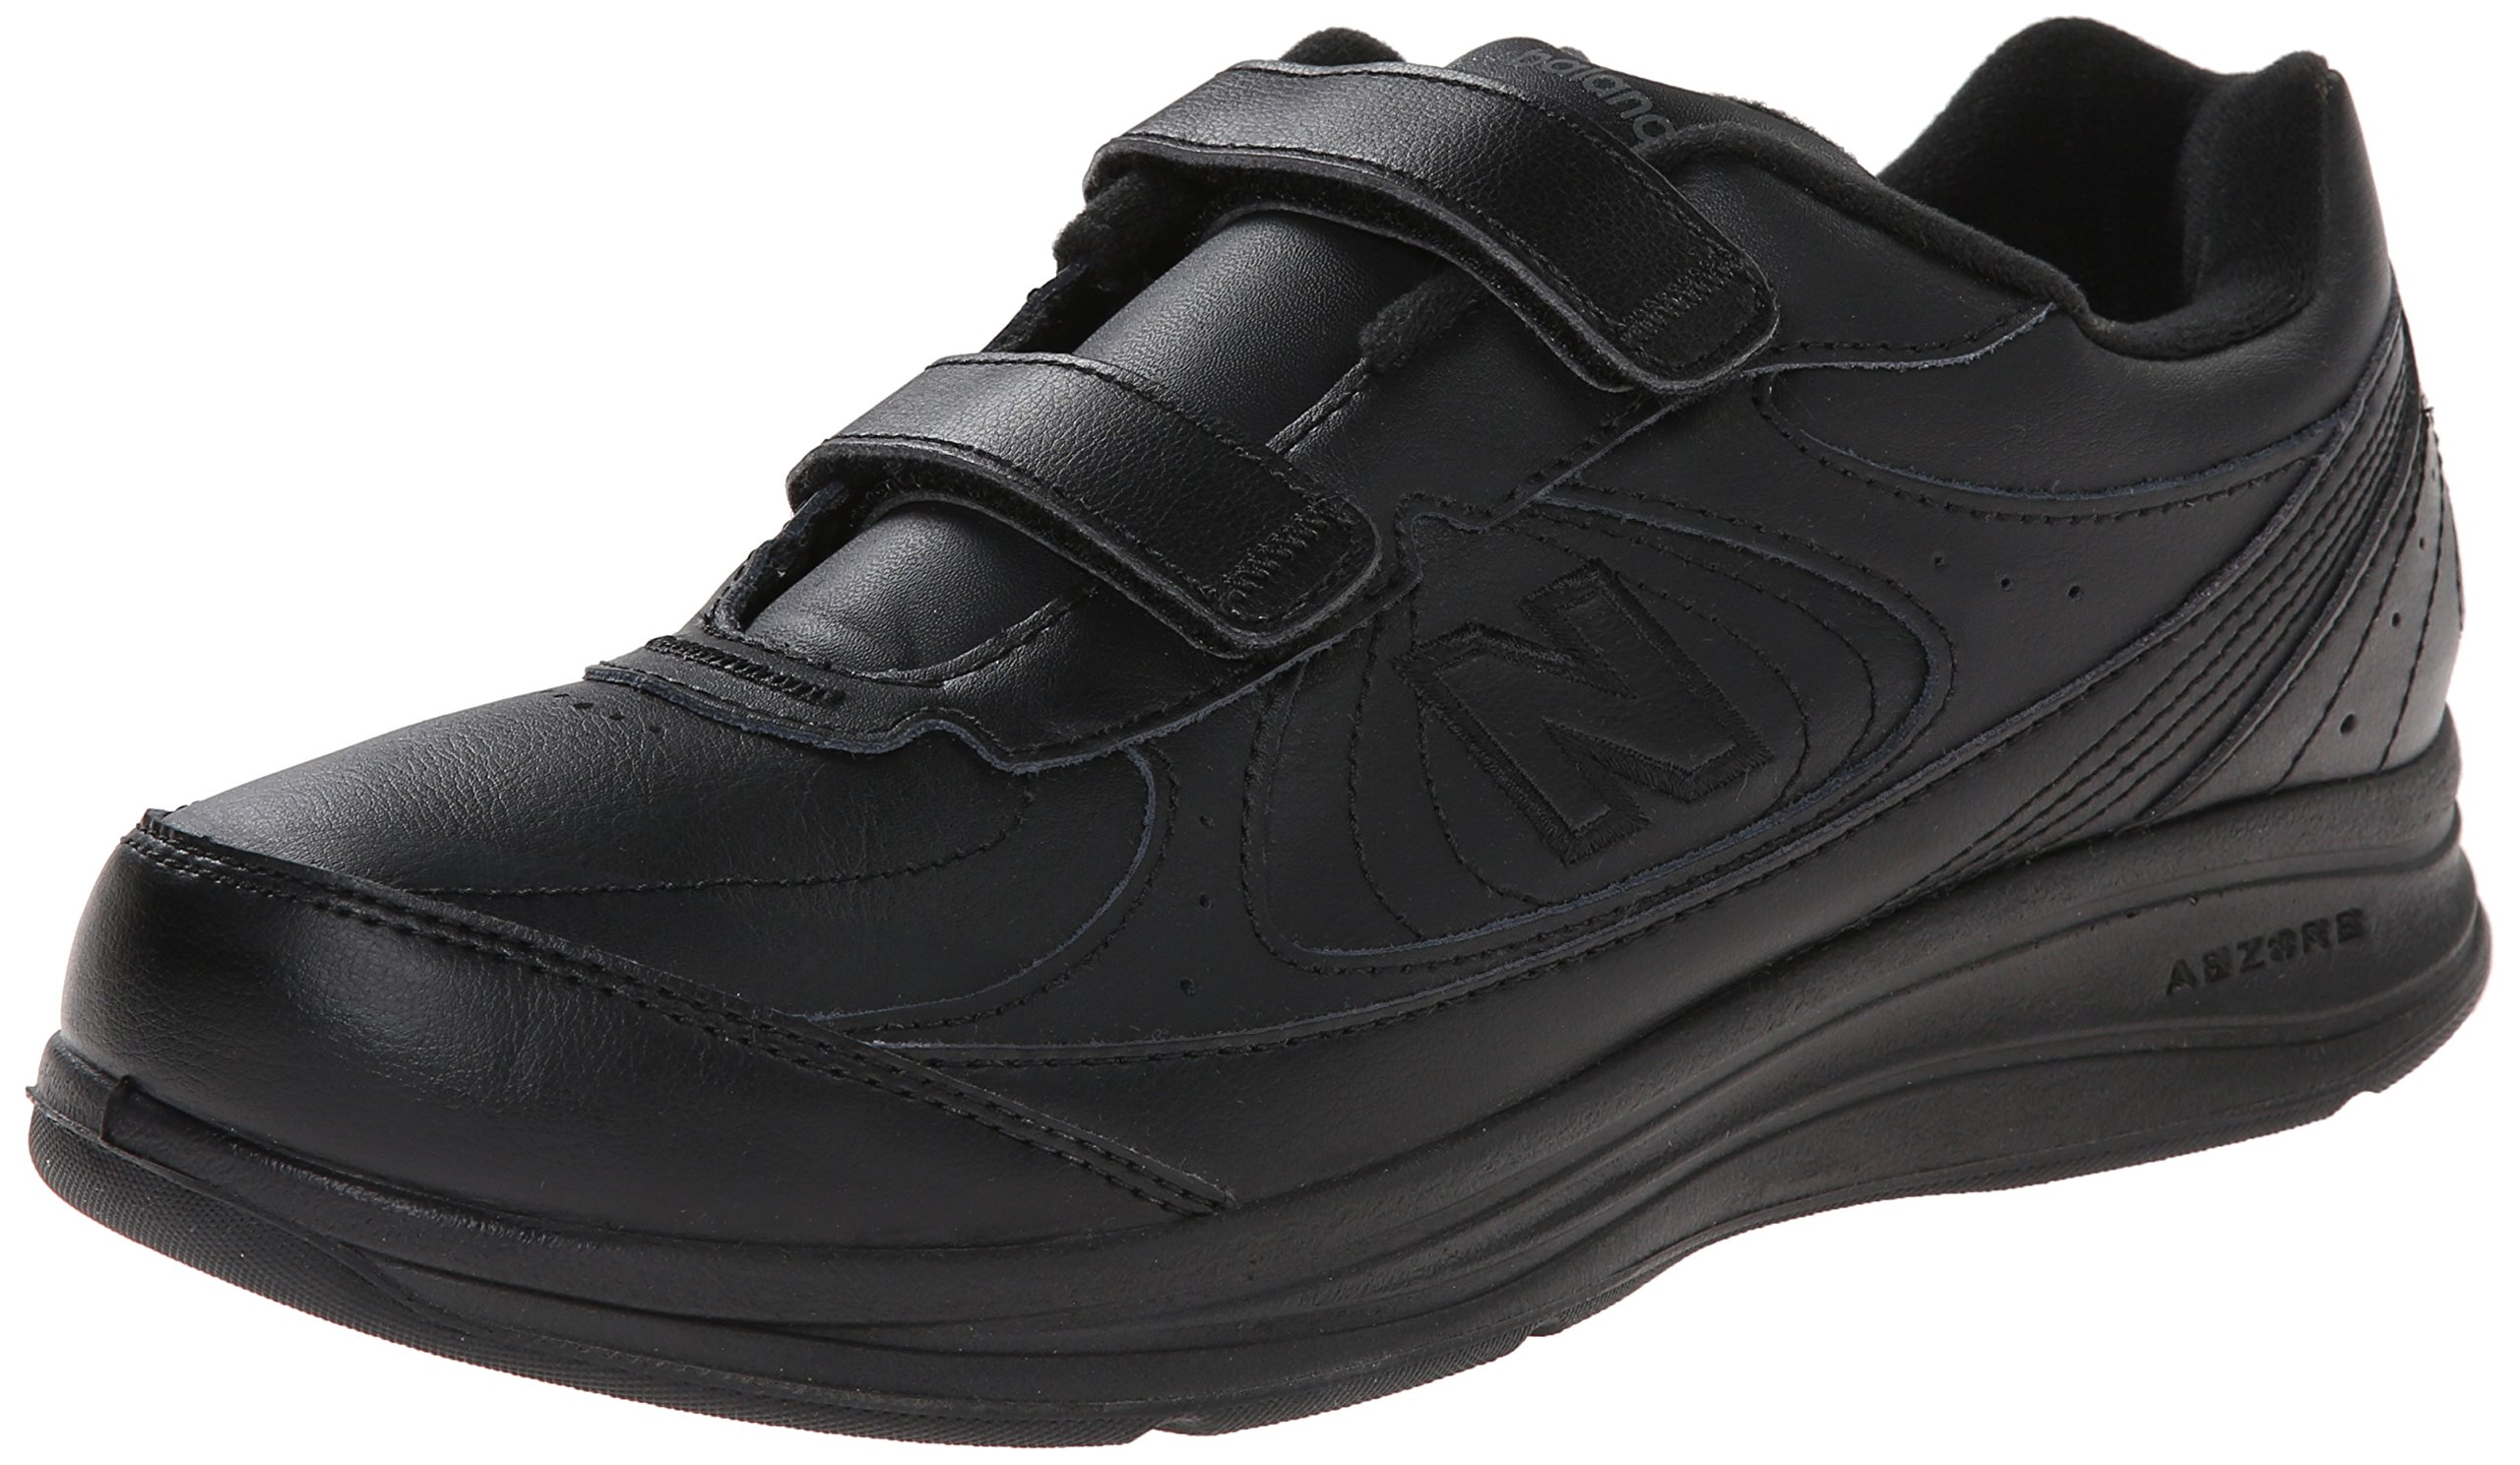 New Balance Men's MW577 Hook and Loop Walking Shoe, Black, 10.5 D US by New Balance